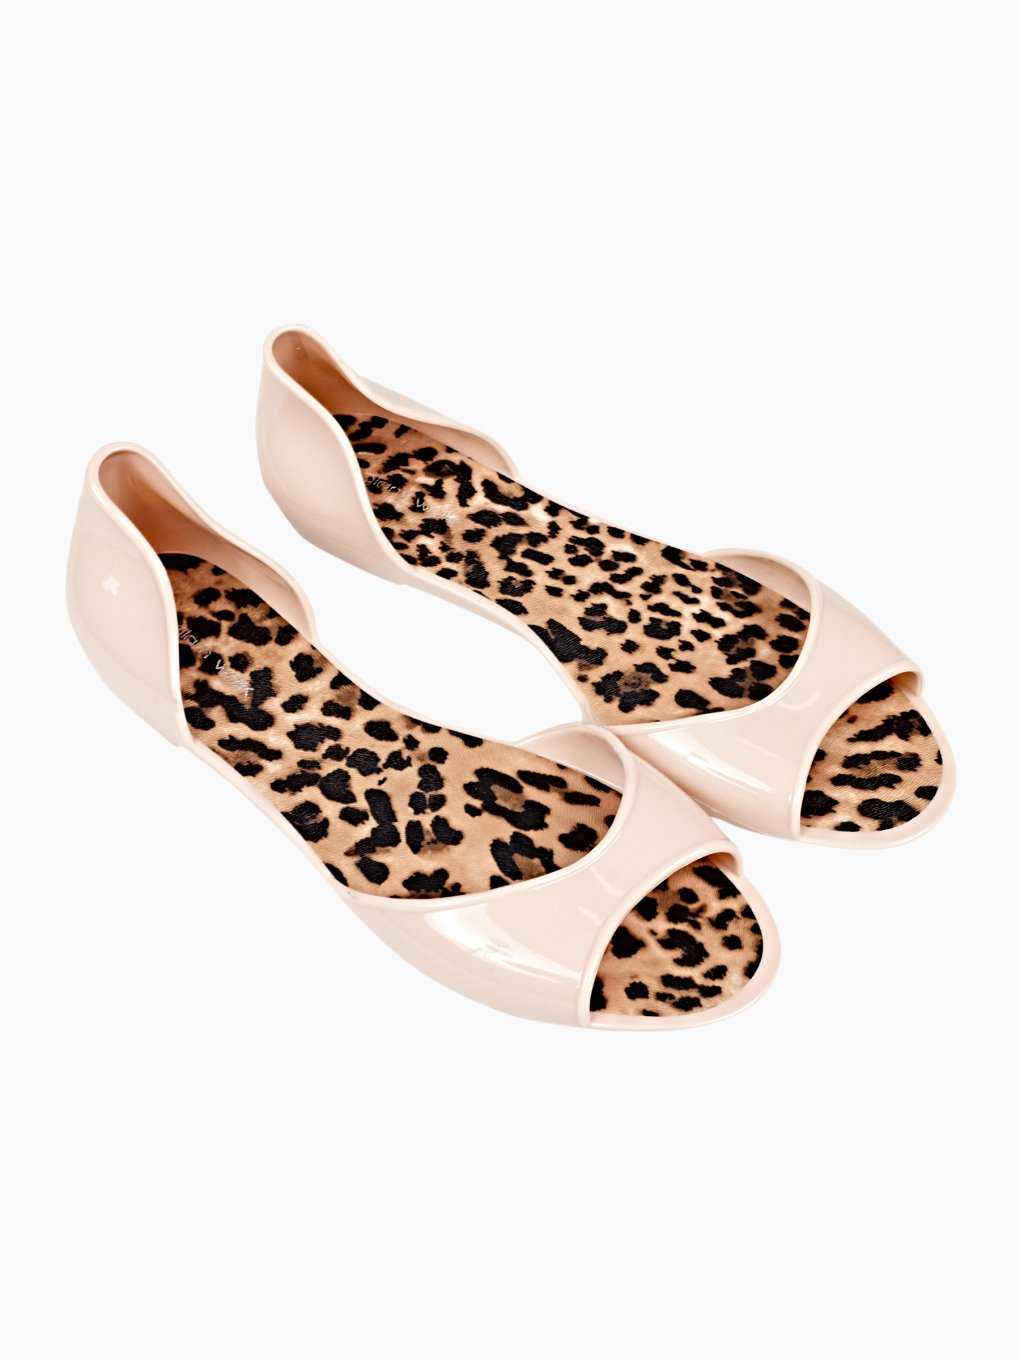 JELLY FLAT SANDALS WITH LEOPARD PRINT INSOLE